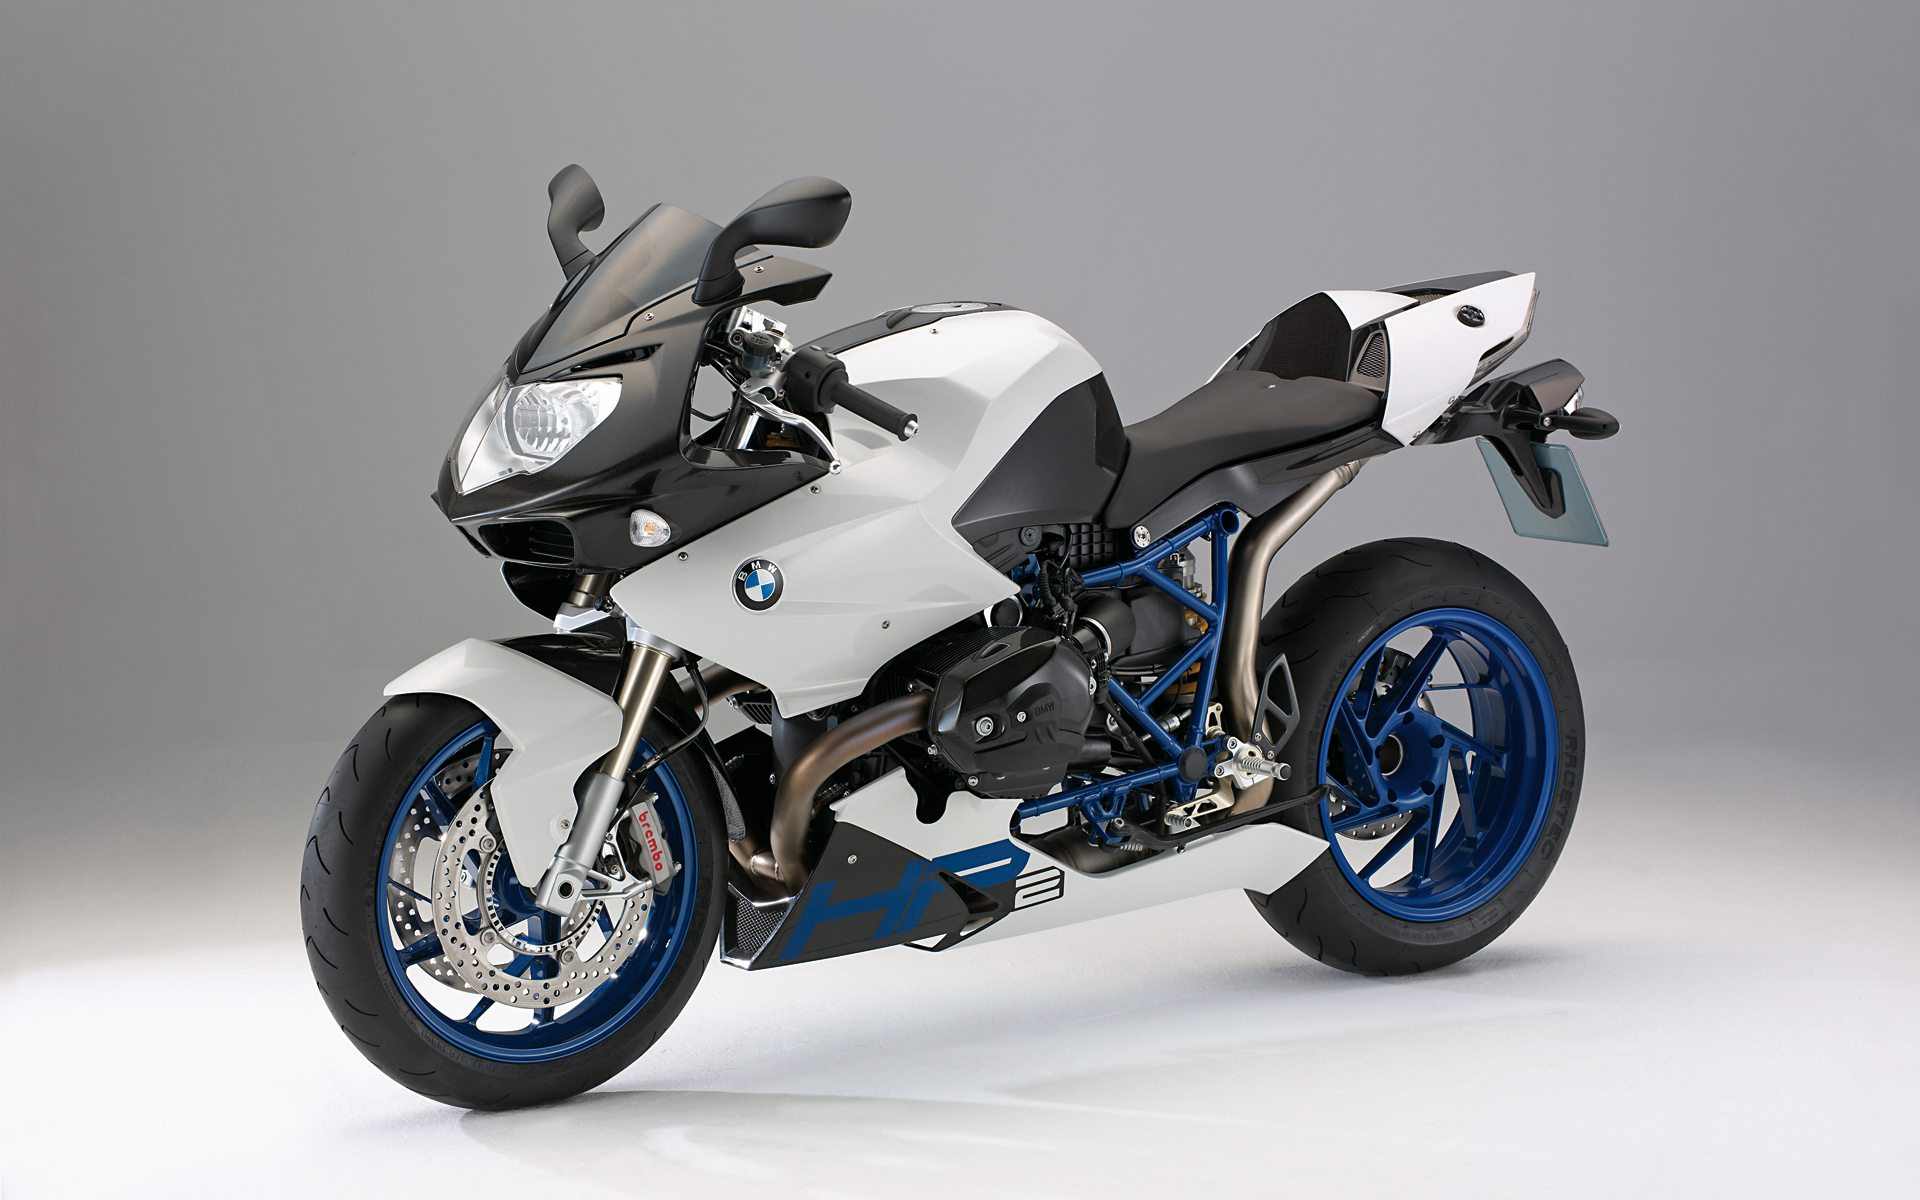 Sport Bike Wallpaper Desktop Backgrounds: BMW H2P SPORT BIKE Wallpapers